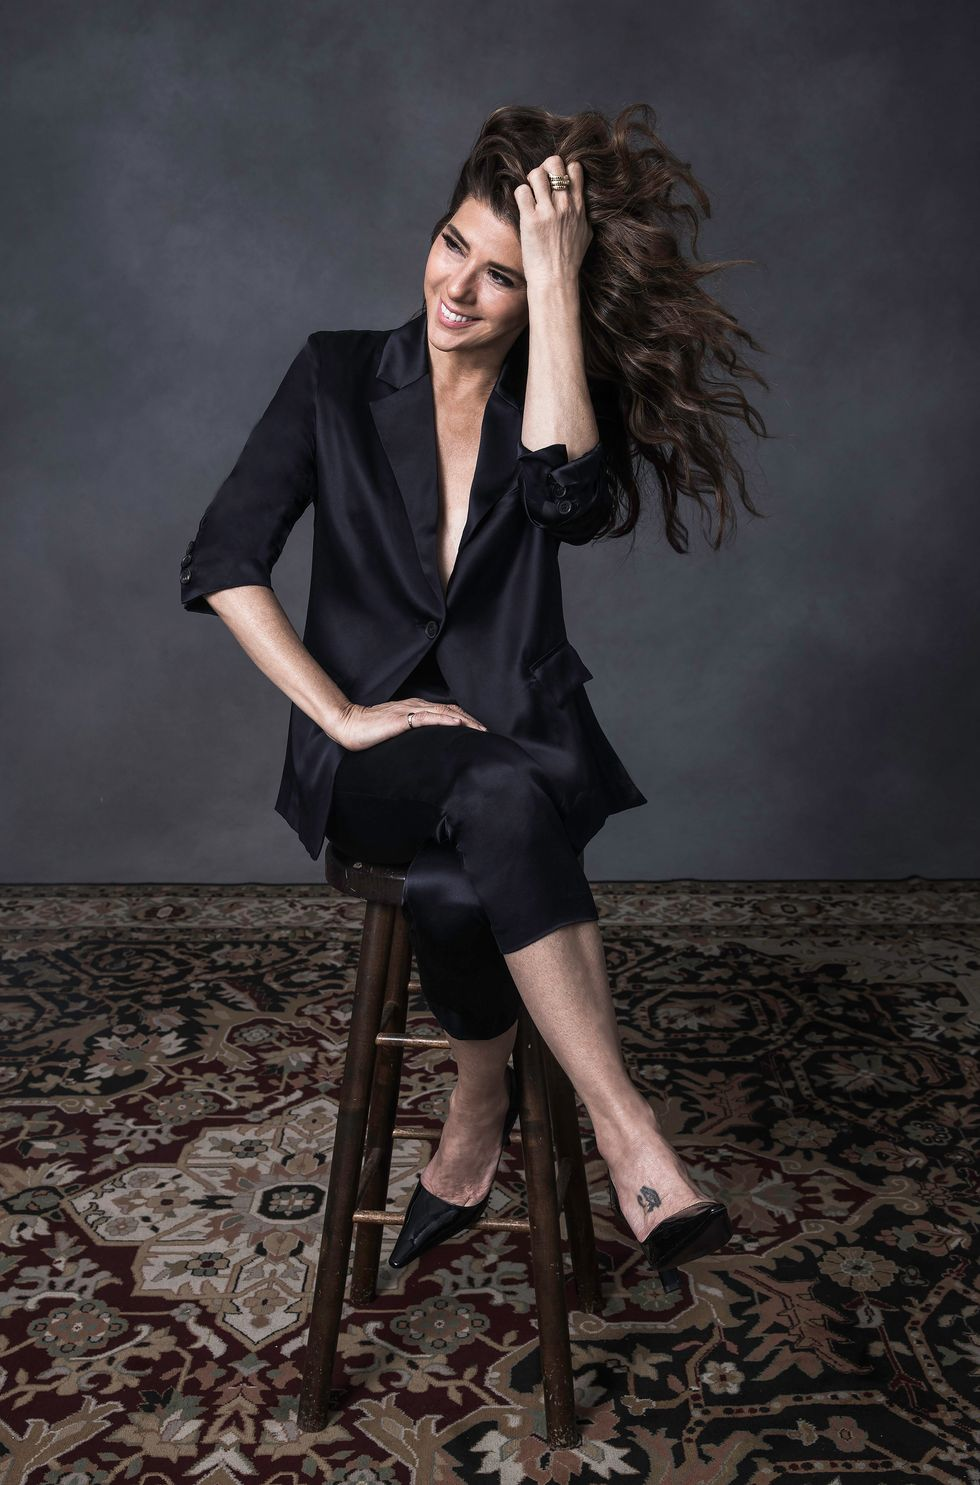 Laura Linney Marisa Tomei And The Biggest Stars On Broadway Paper The actress, marisa tomei is the hottest woman in hollywood and she is also very talented in her field. biggest stars on broadway